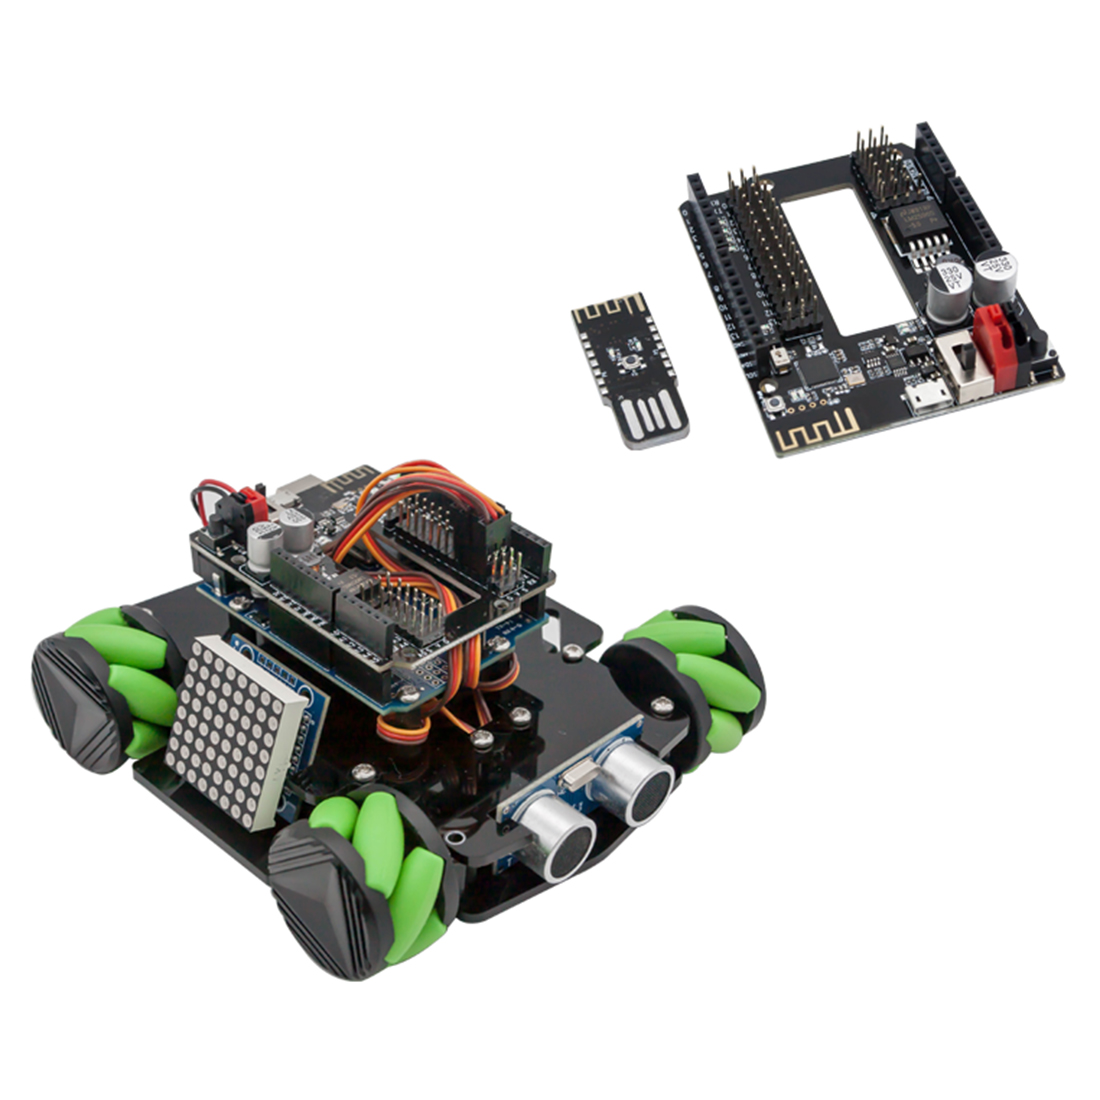 DIY Obstacle Avoidance Smart Programmable Robot Car Educational Learning Kit With Mecanum Wheels For Arduino 4 Type